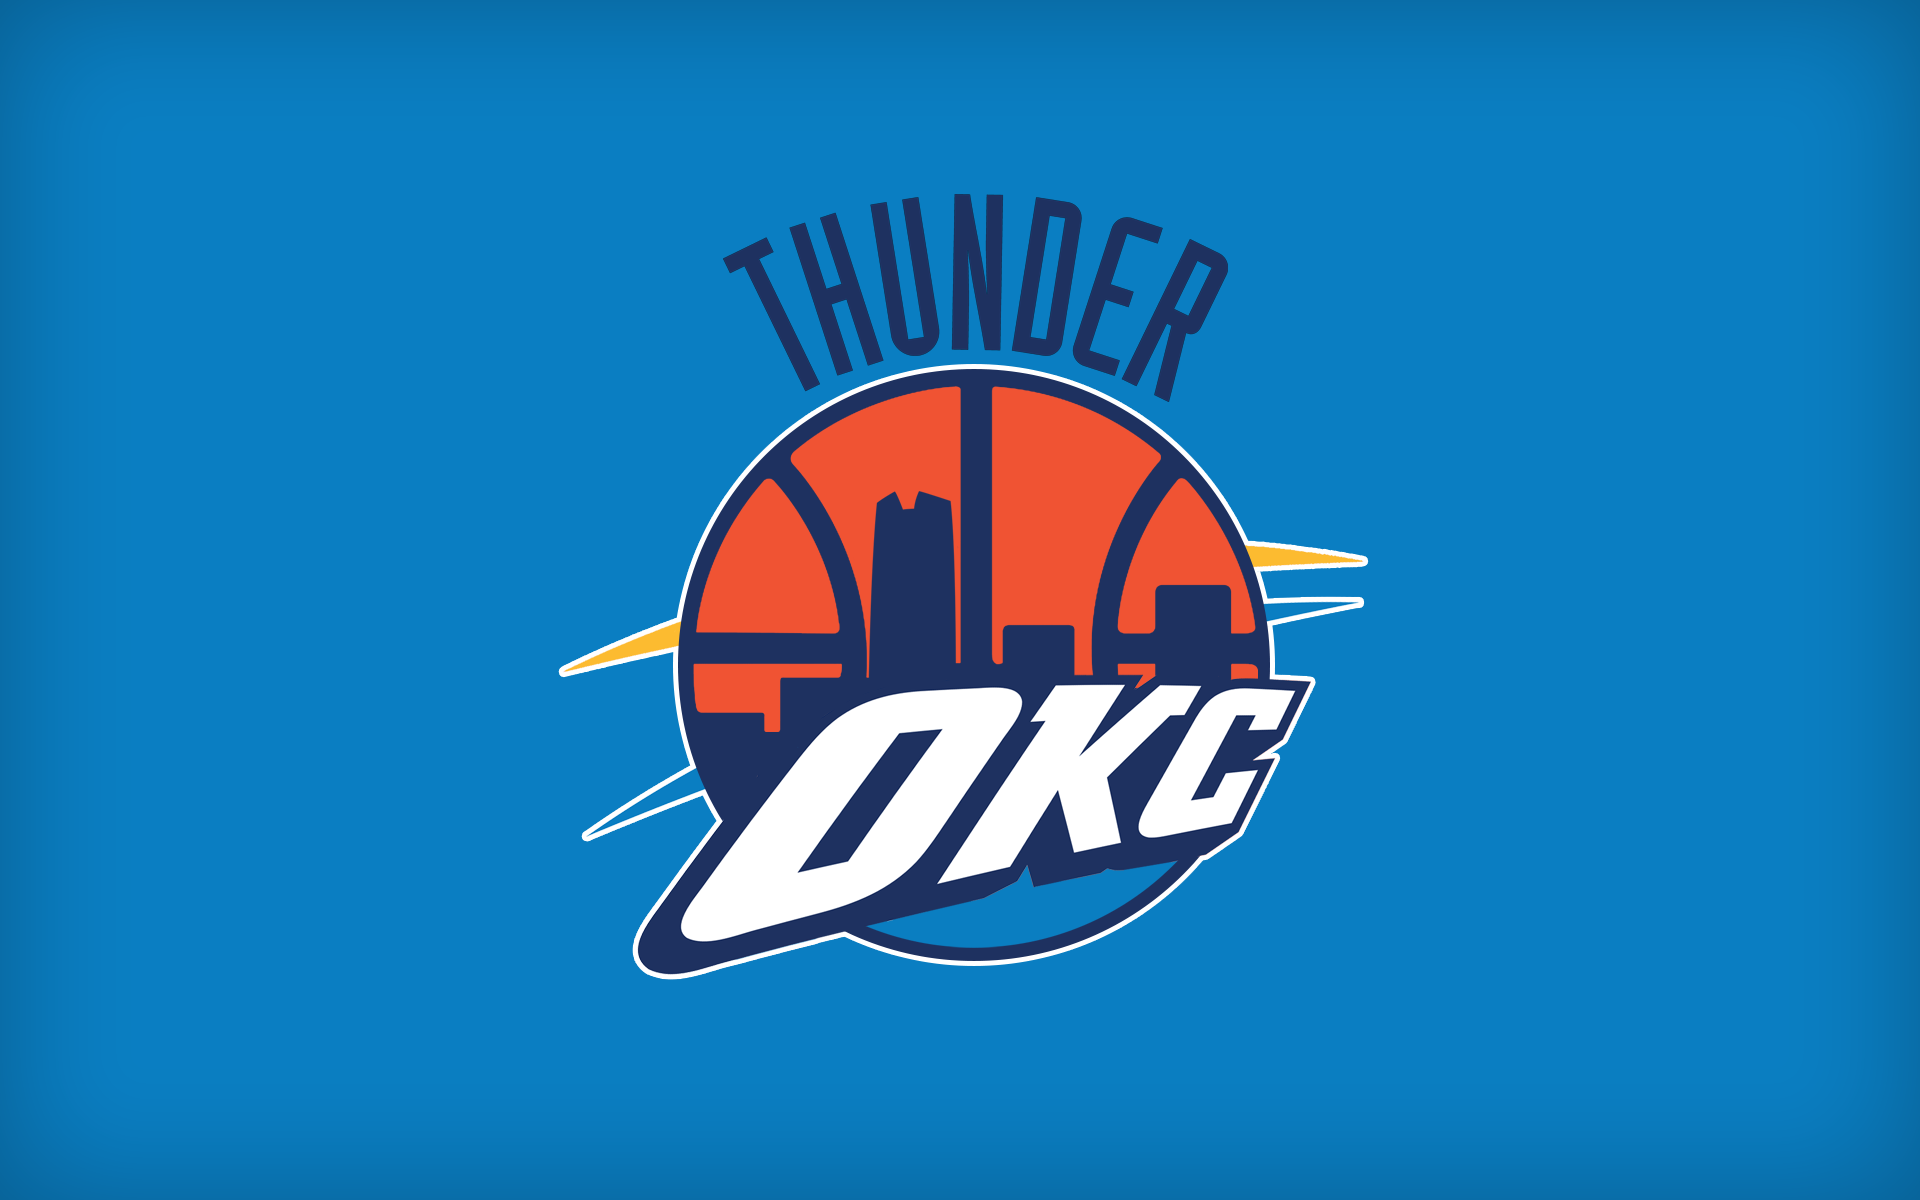 Redesigning Nba Team Logos With Elements Of Old And New Nba Teams Oklahoma City Thunder Okc Thunder